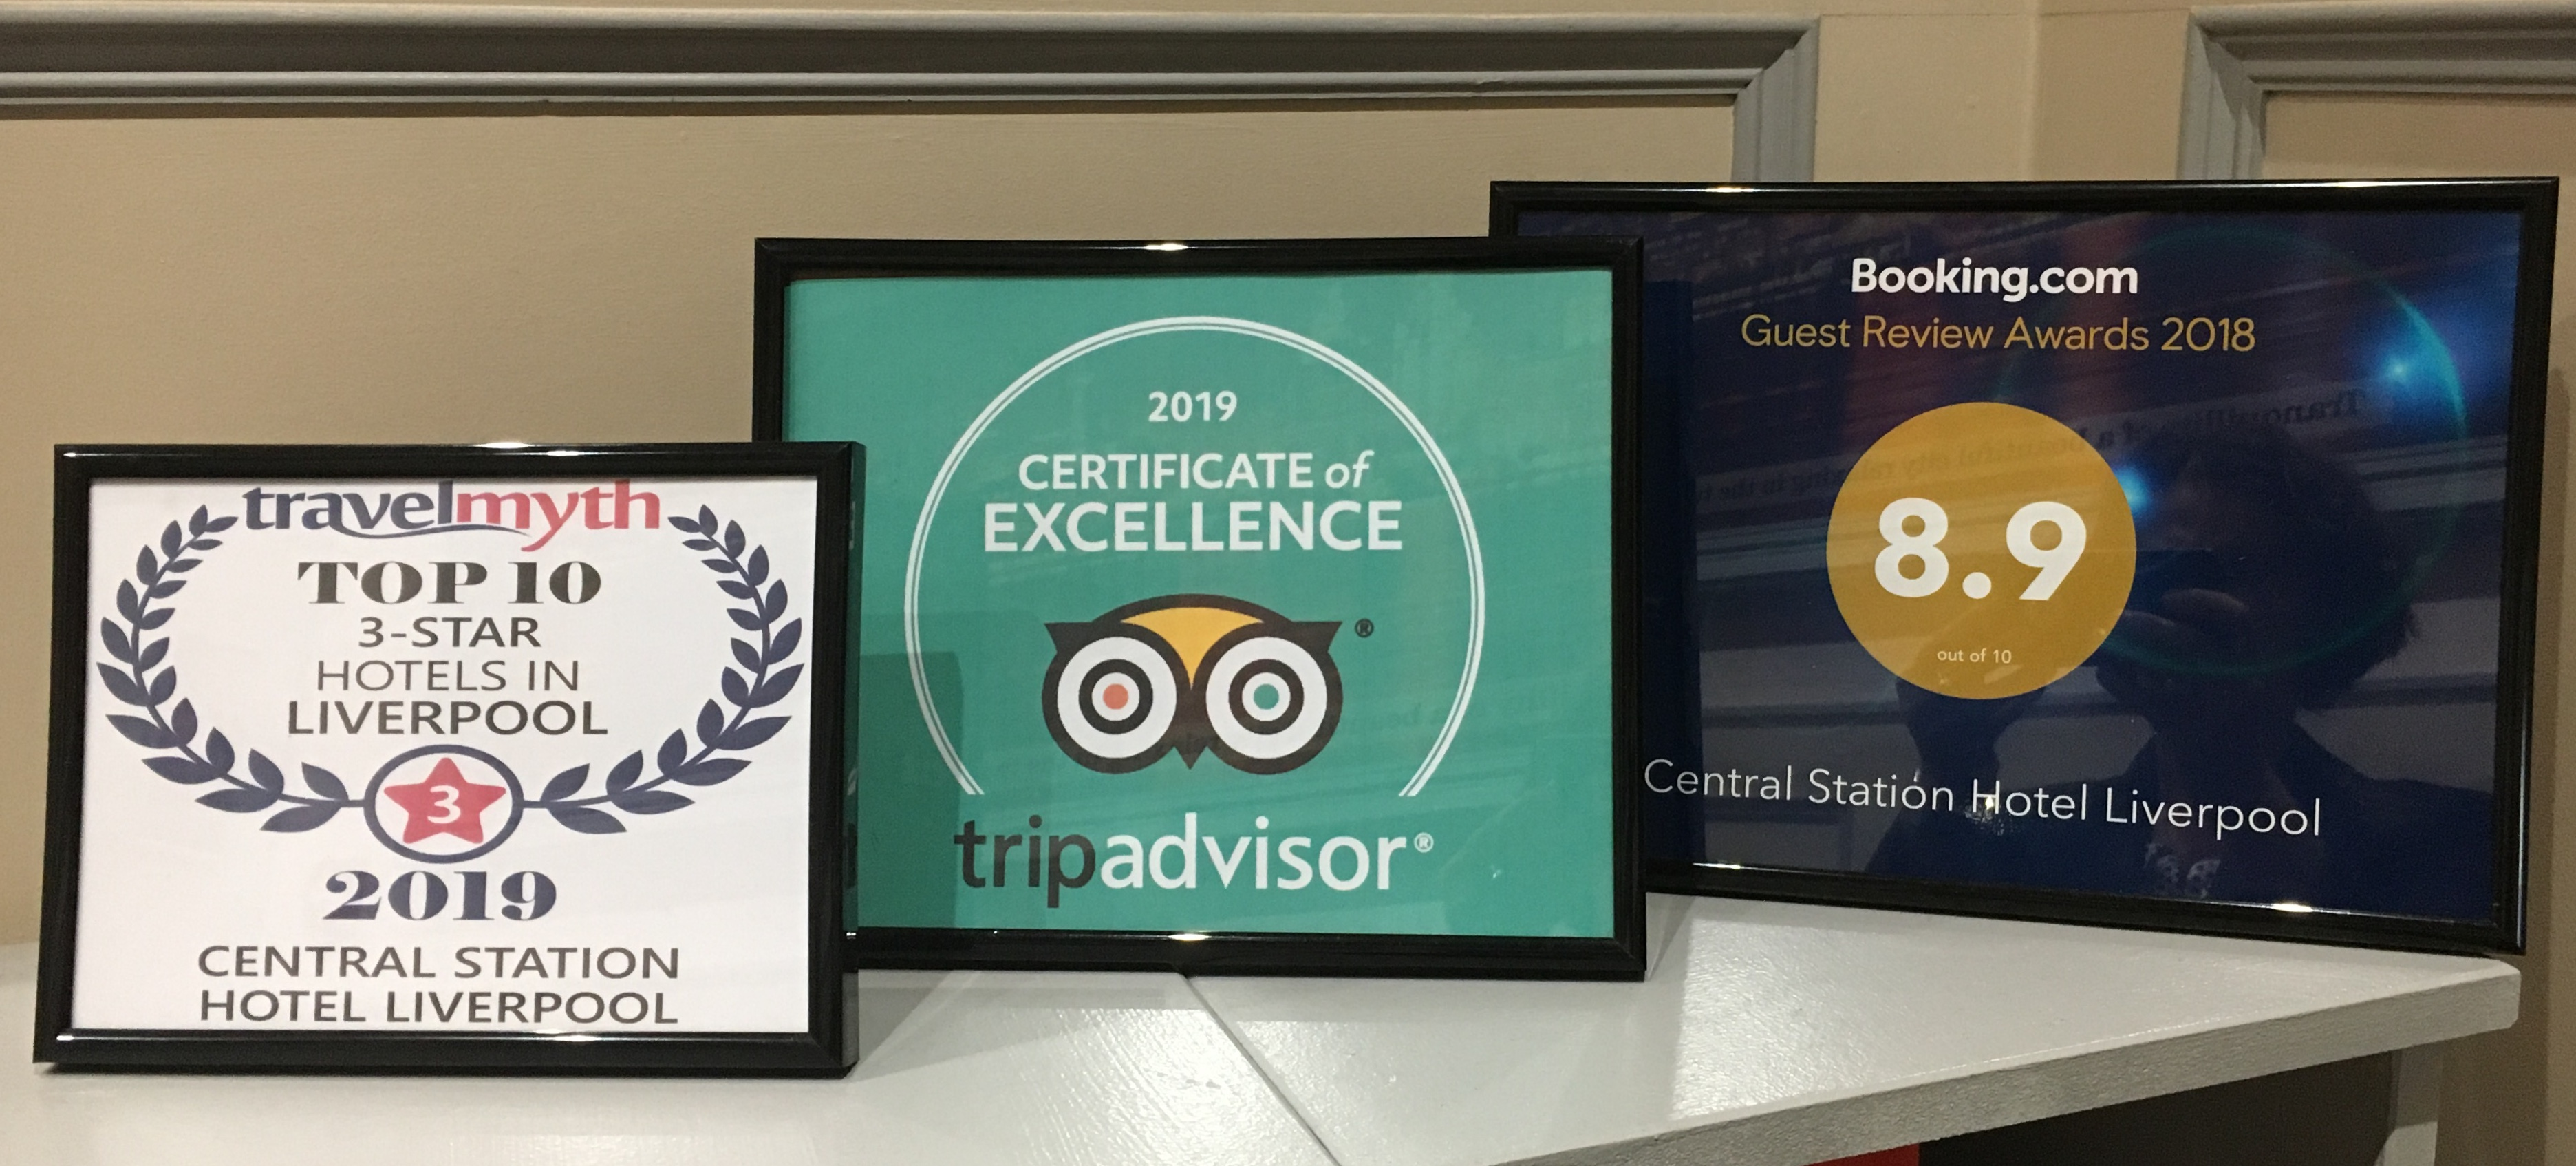 Our Awards & Accolades